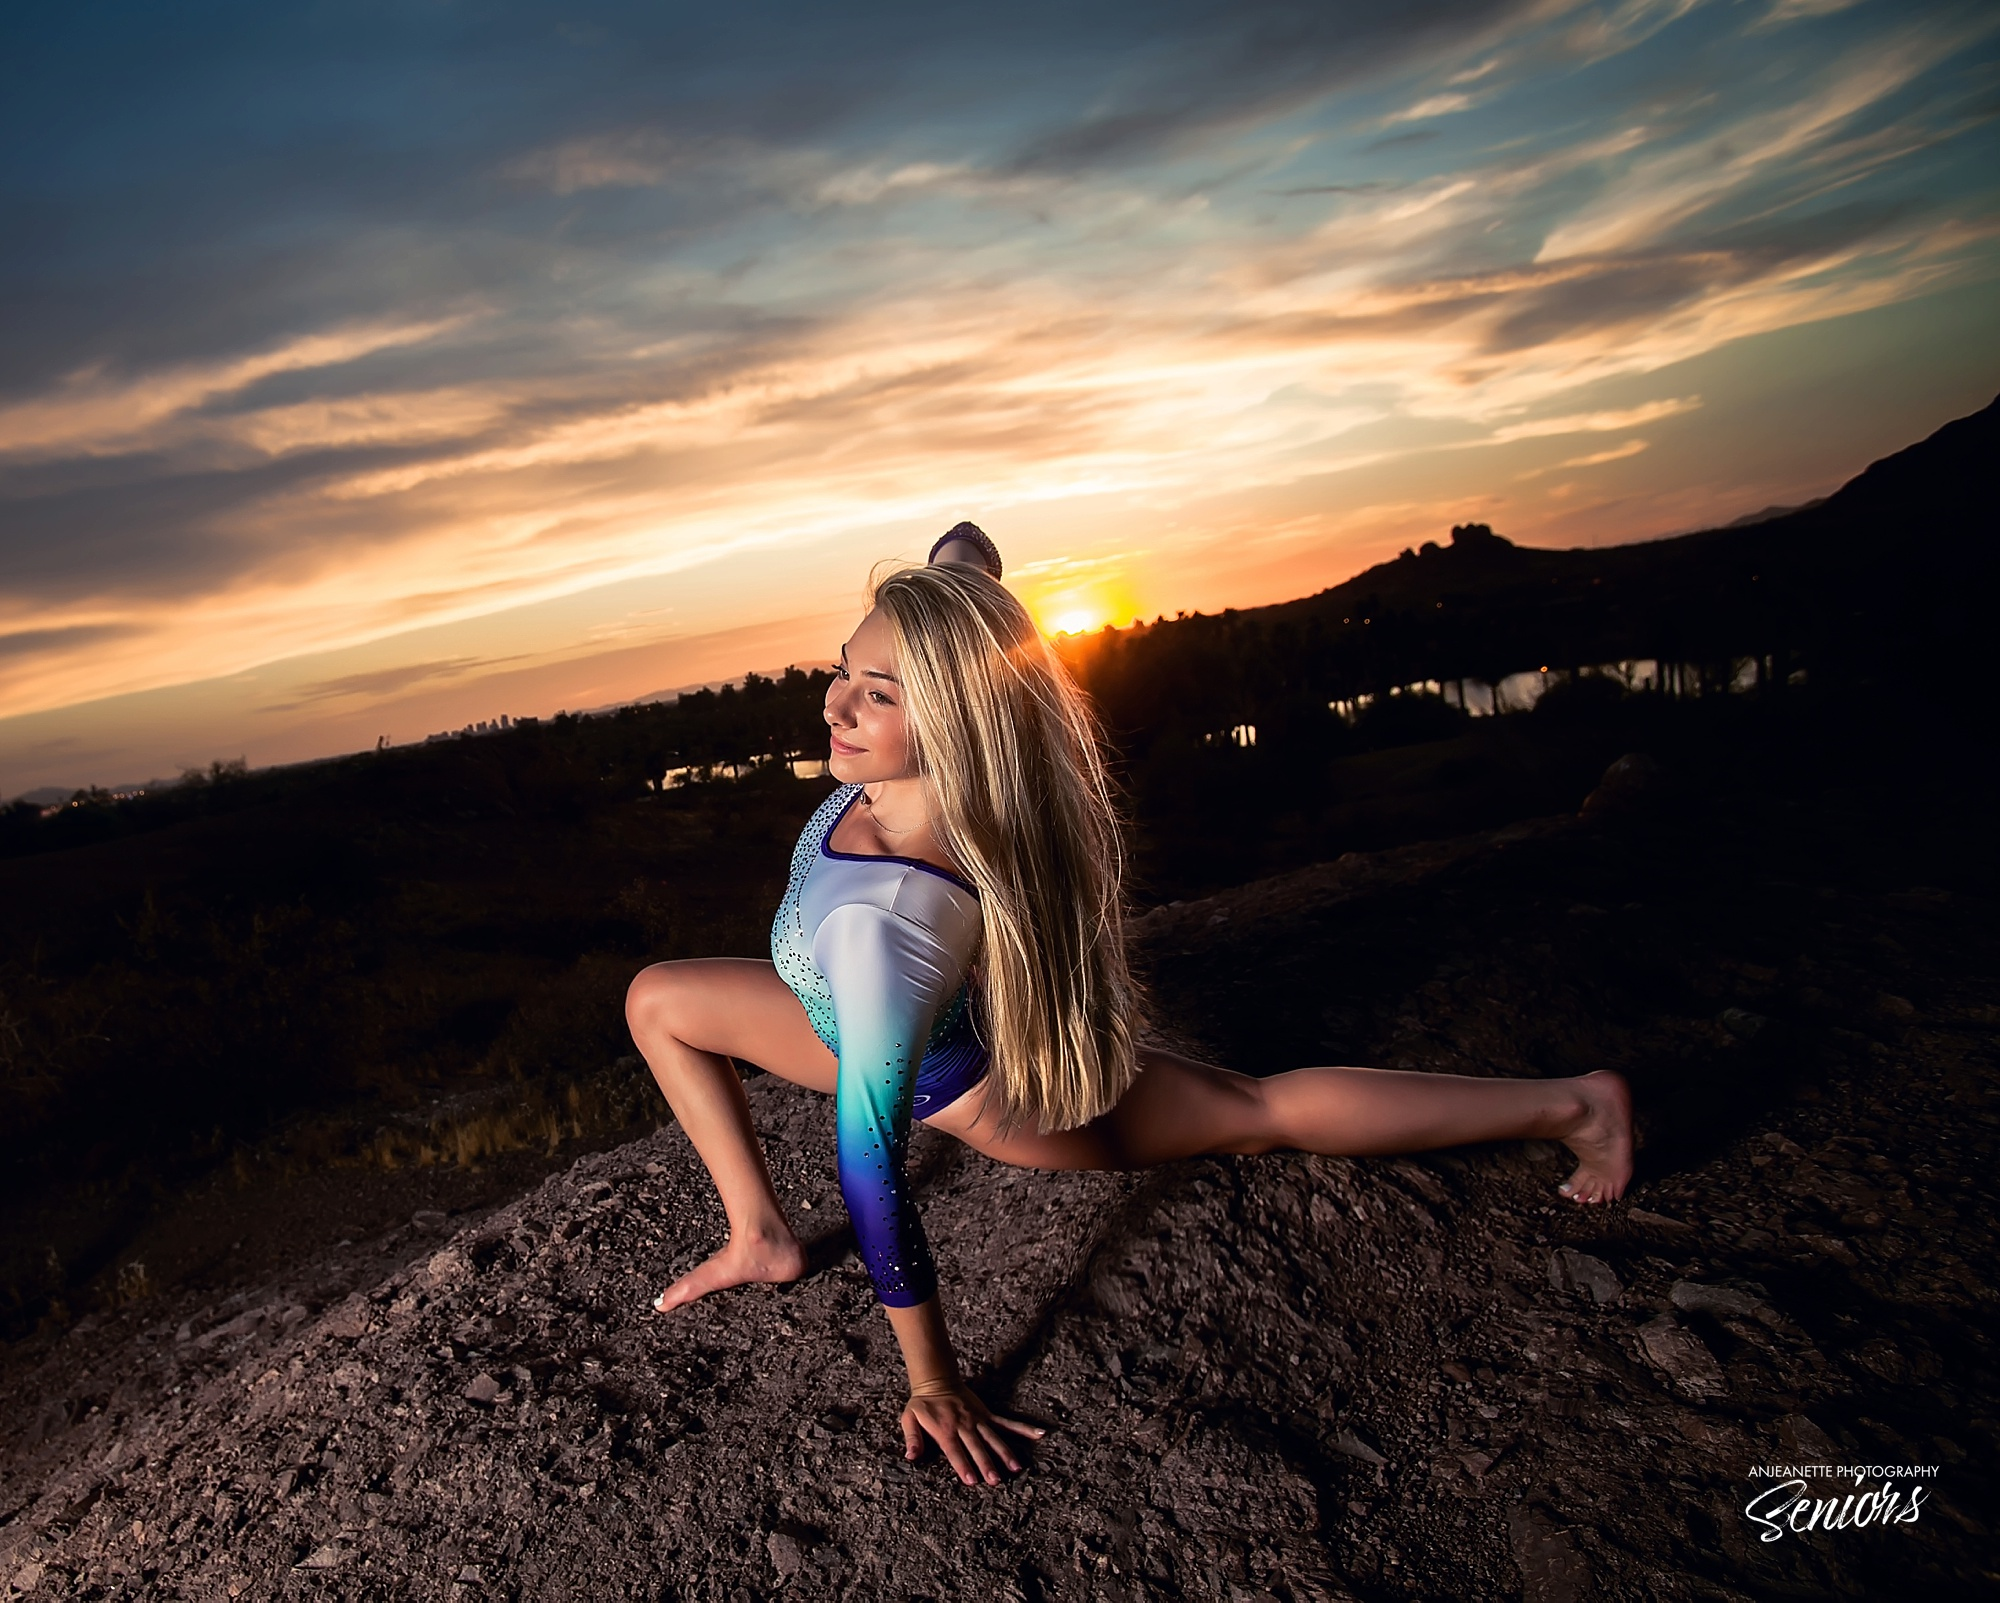 best Places Phoenix az gymnastic dance pictures near me senior graduation pictures Sandra Day O'Connor High School Peoria arizona Anthem high school portraits grad photographer Anjeanette Photography